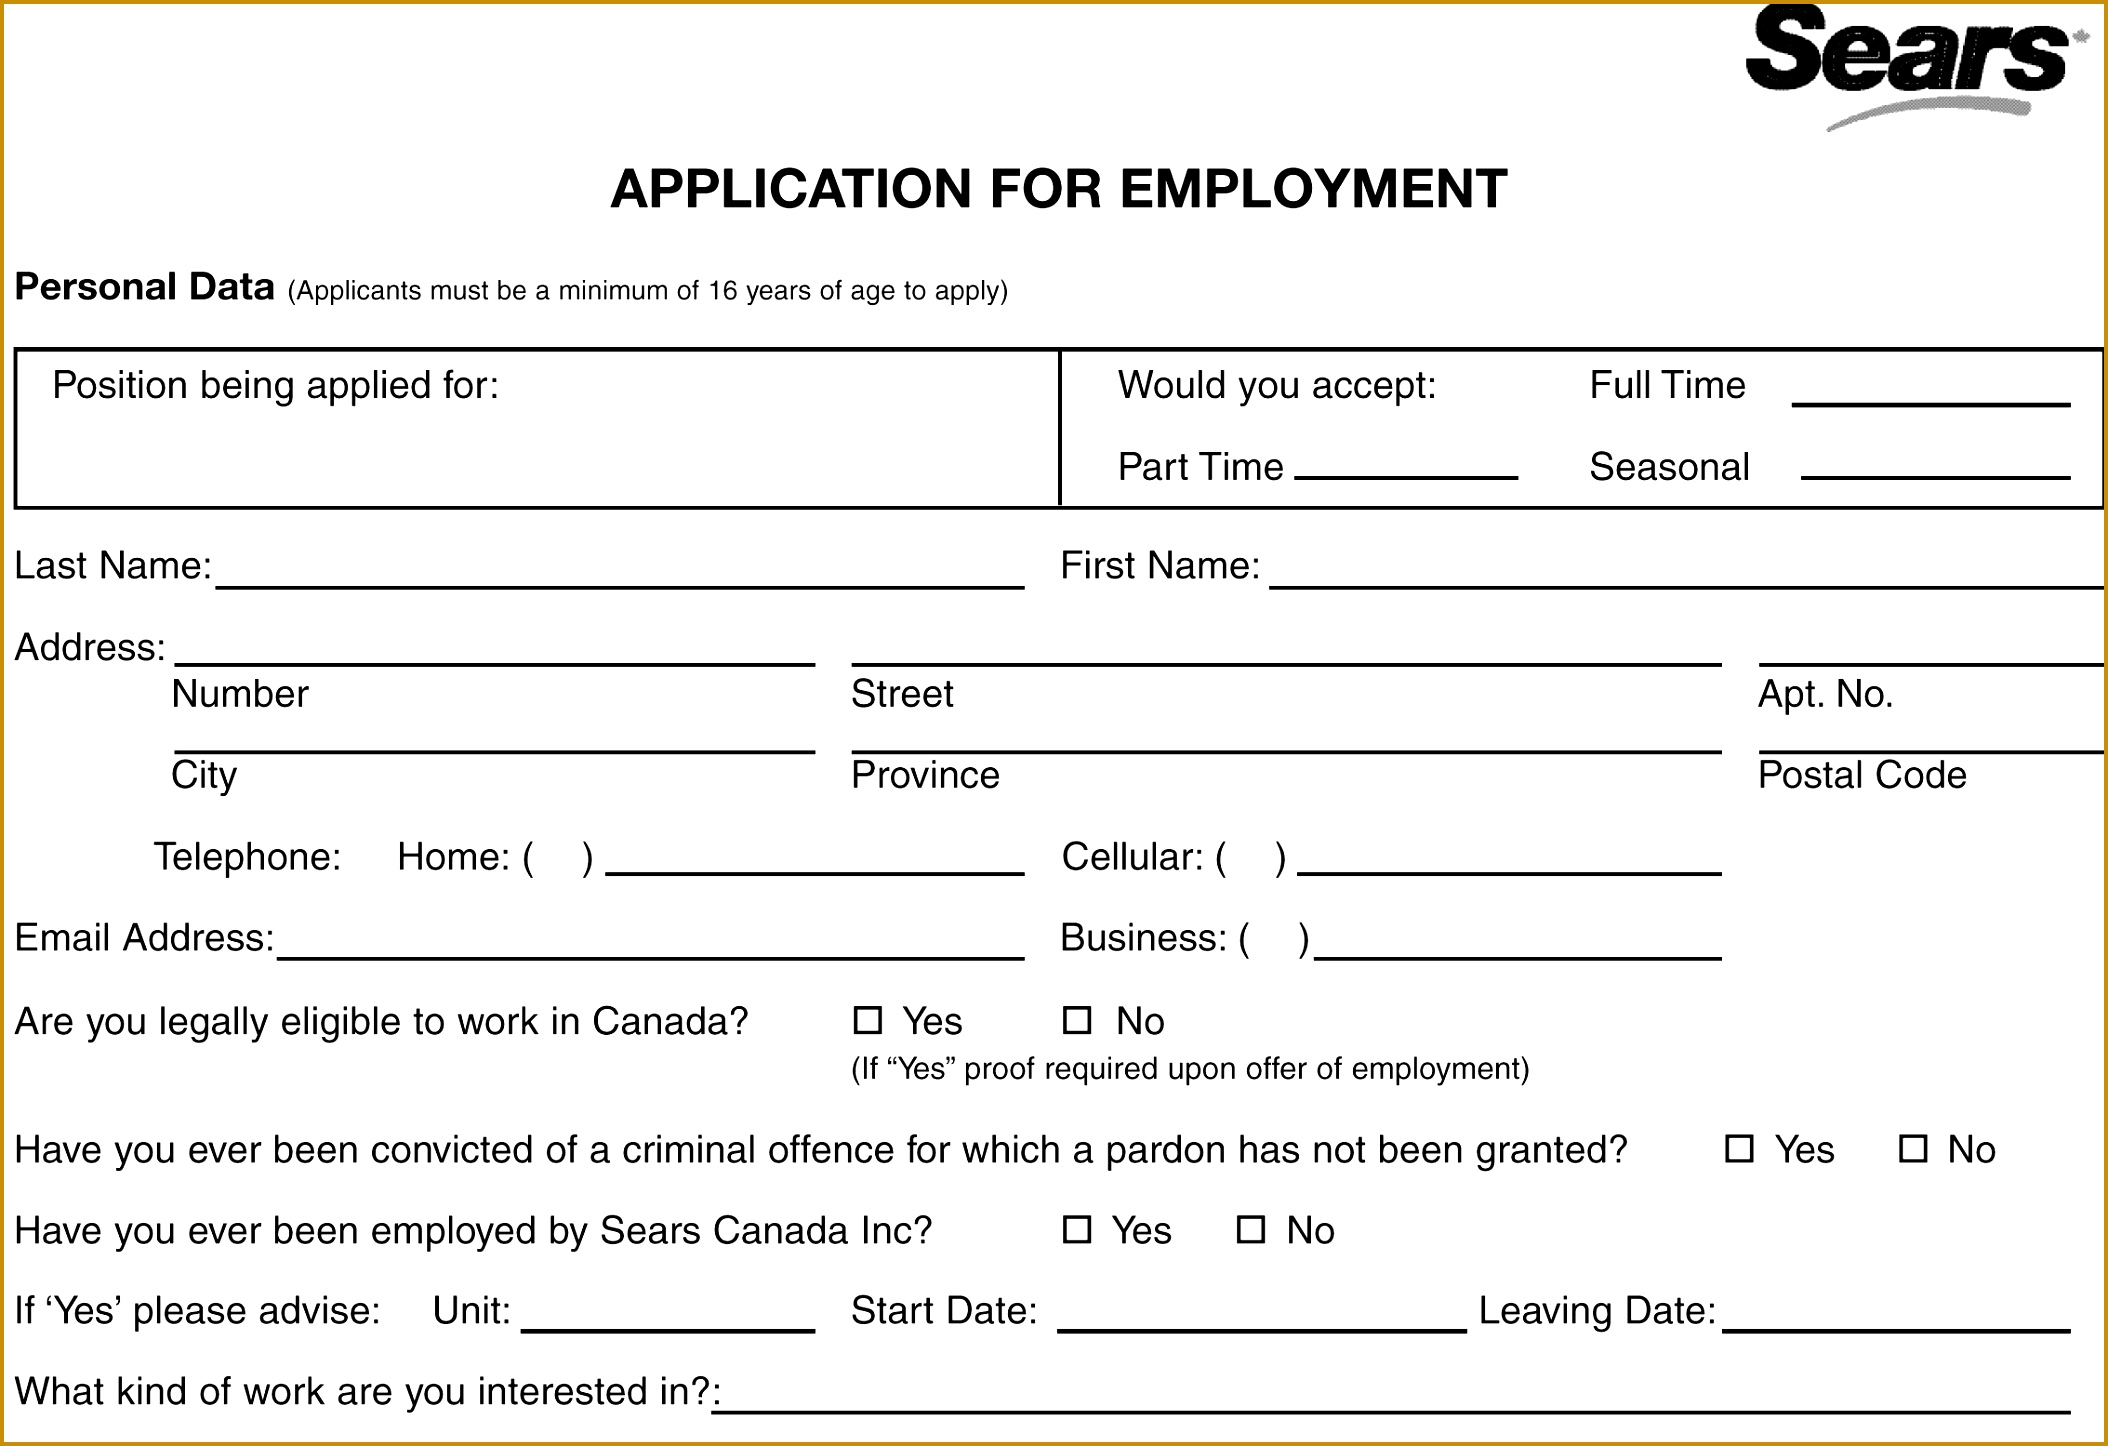 Business Application Form Template Printable Job Application Sears Job Application Printable Job Employment Forms Throughout Business 14462108